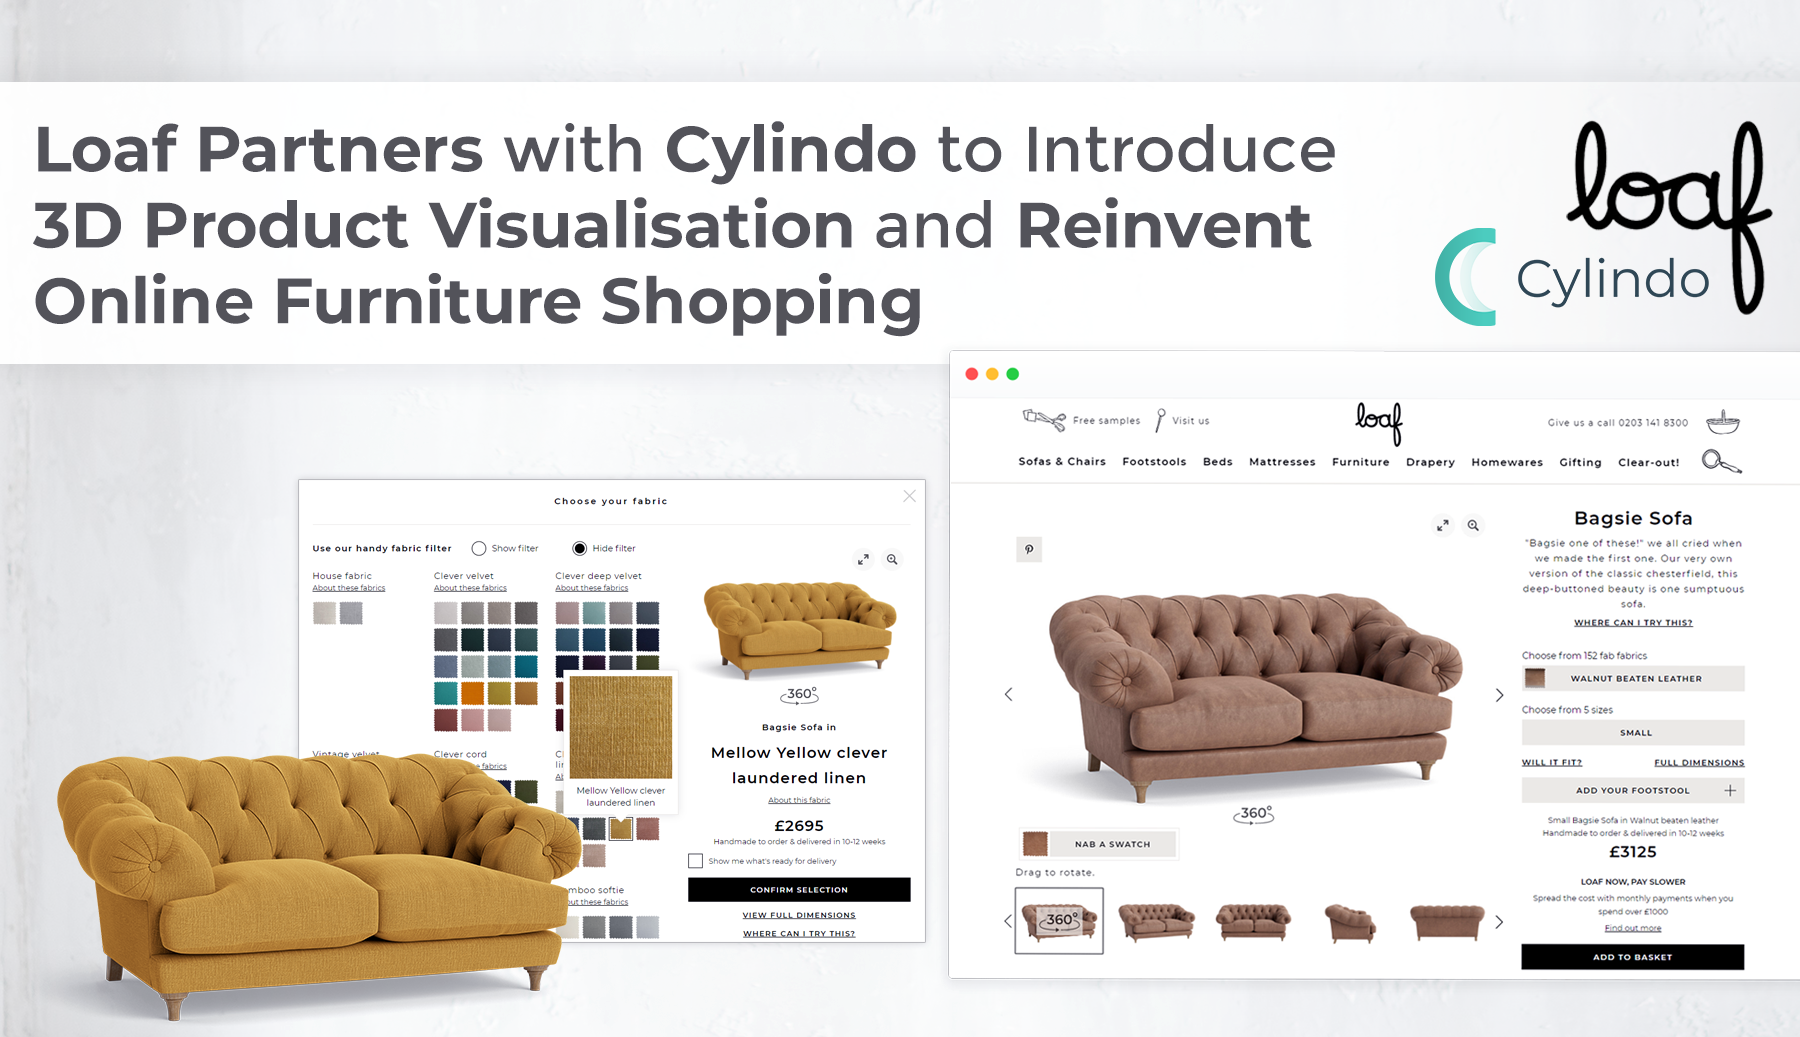 Loaf Partners with Cylindo to Introduce 3D Product Visualization and Reinvent Online Furniture Shopping